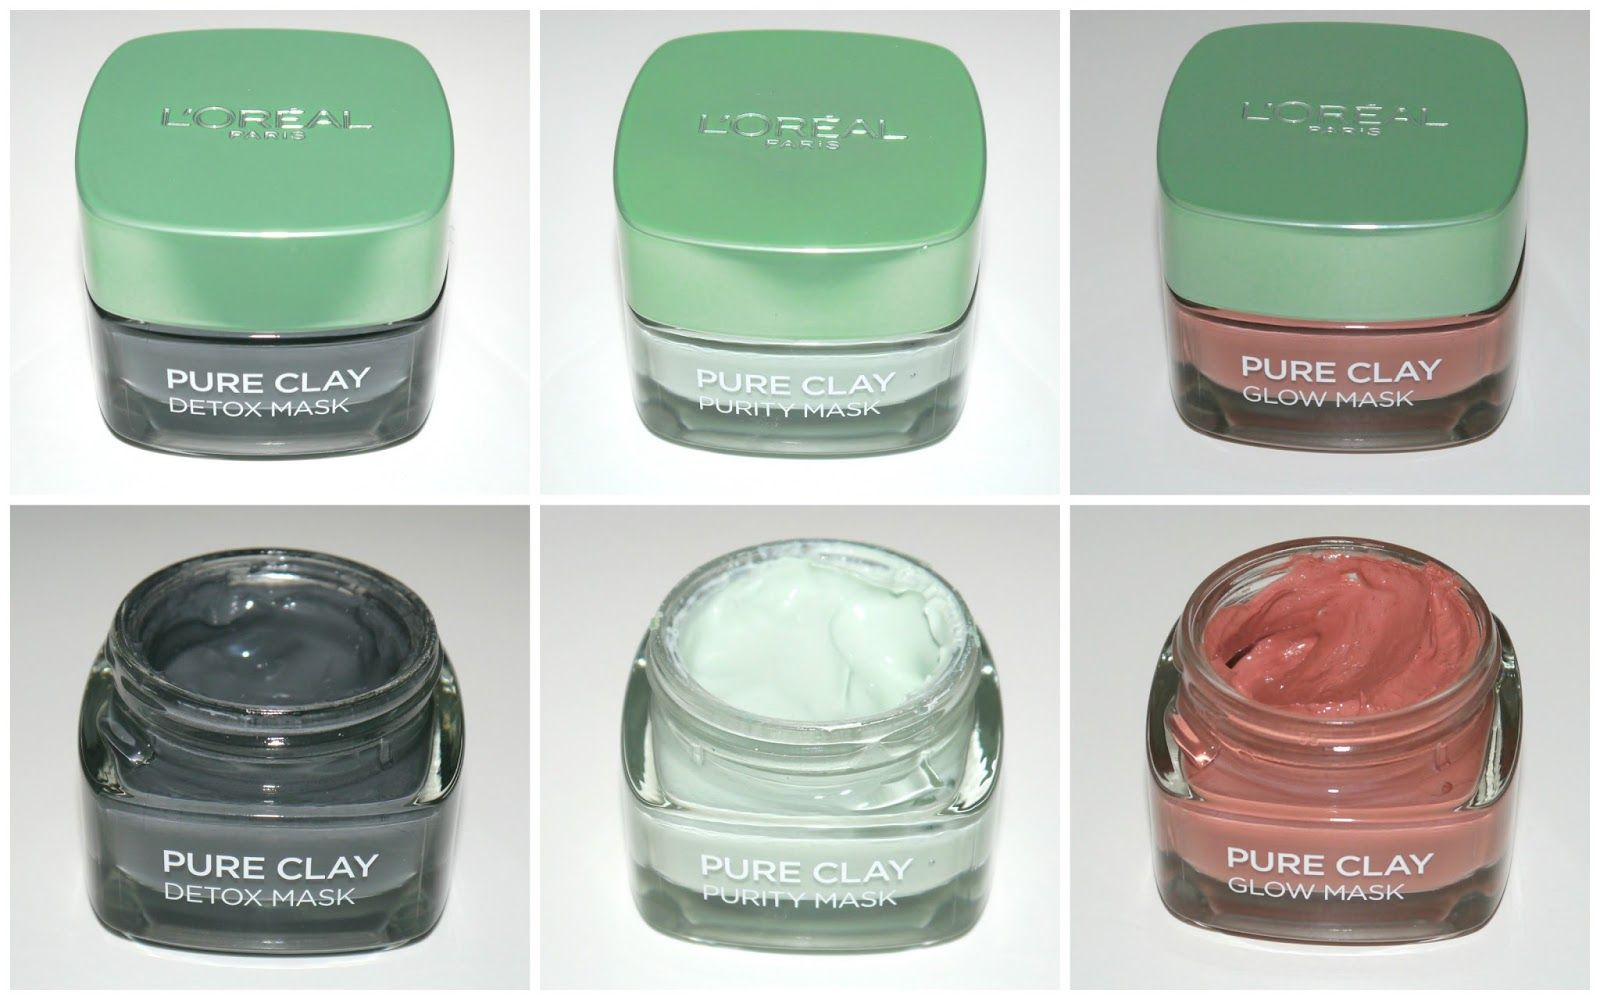 L'Oreal Pure Clay Masks // The August Review Consejos